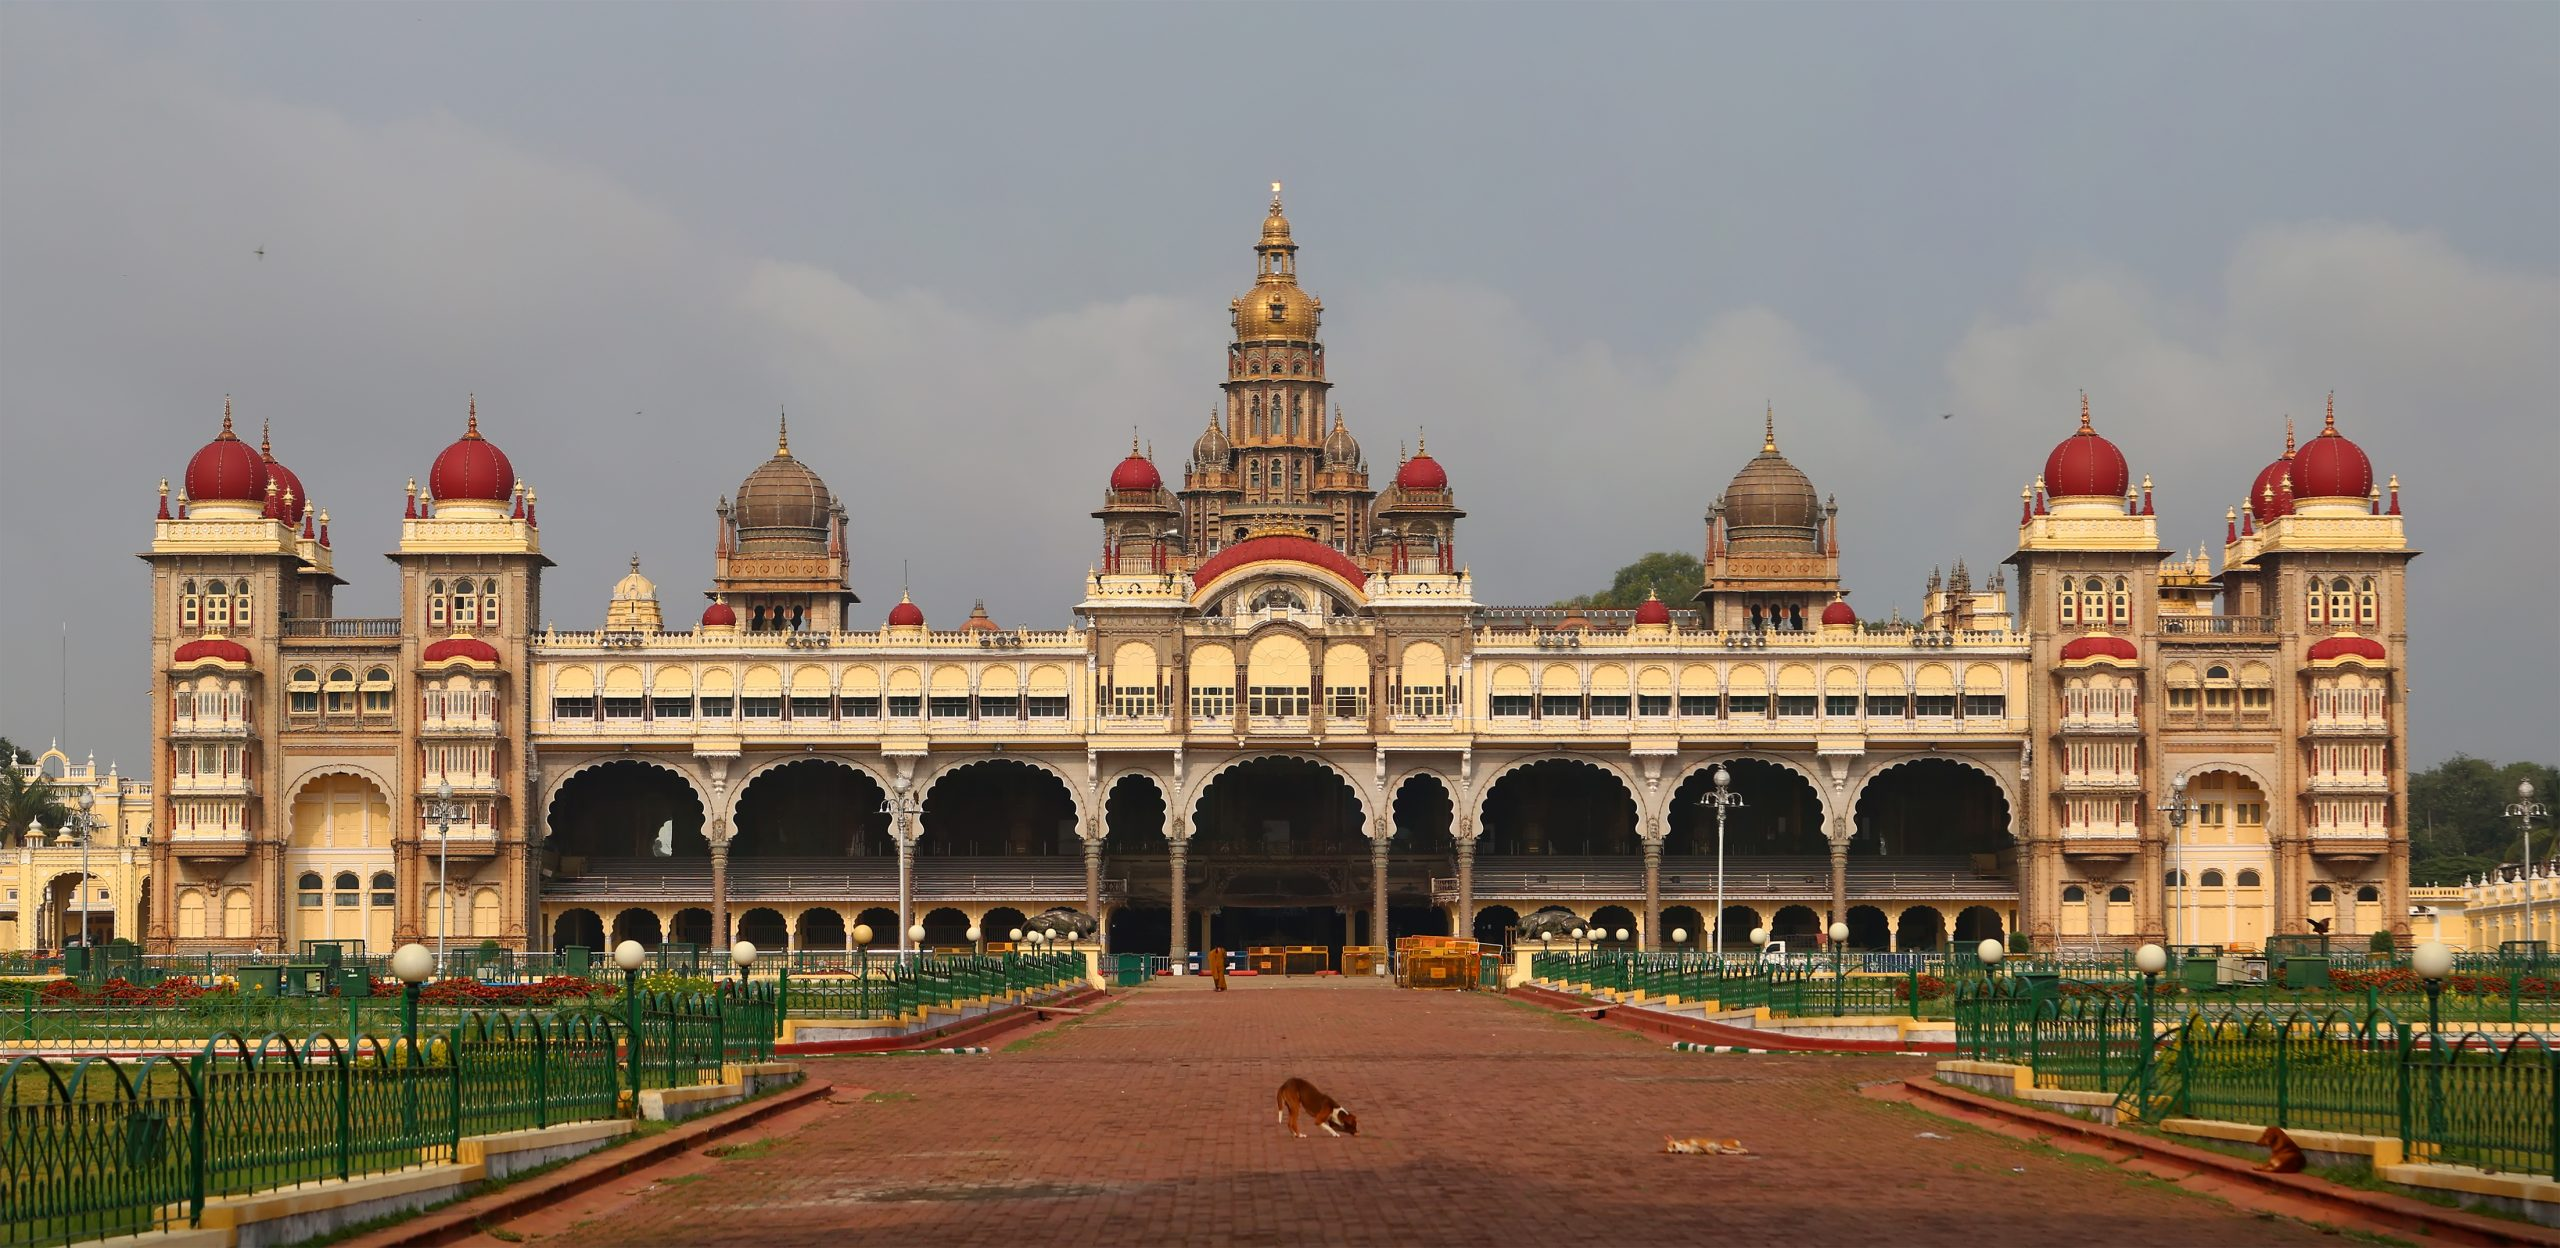 Architecture of Mysore Palace